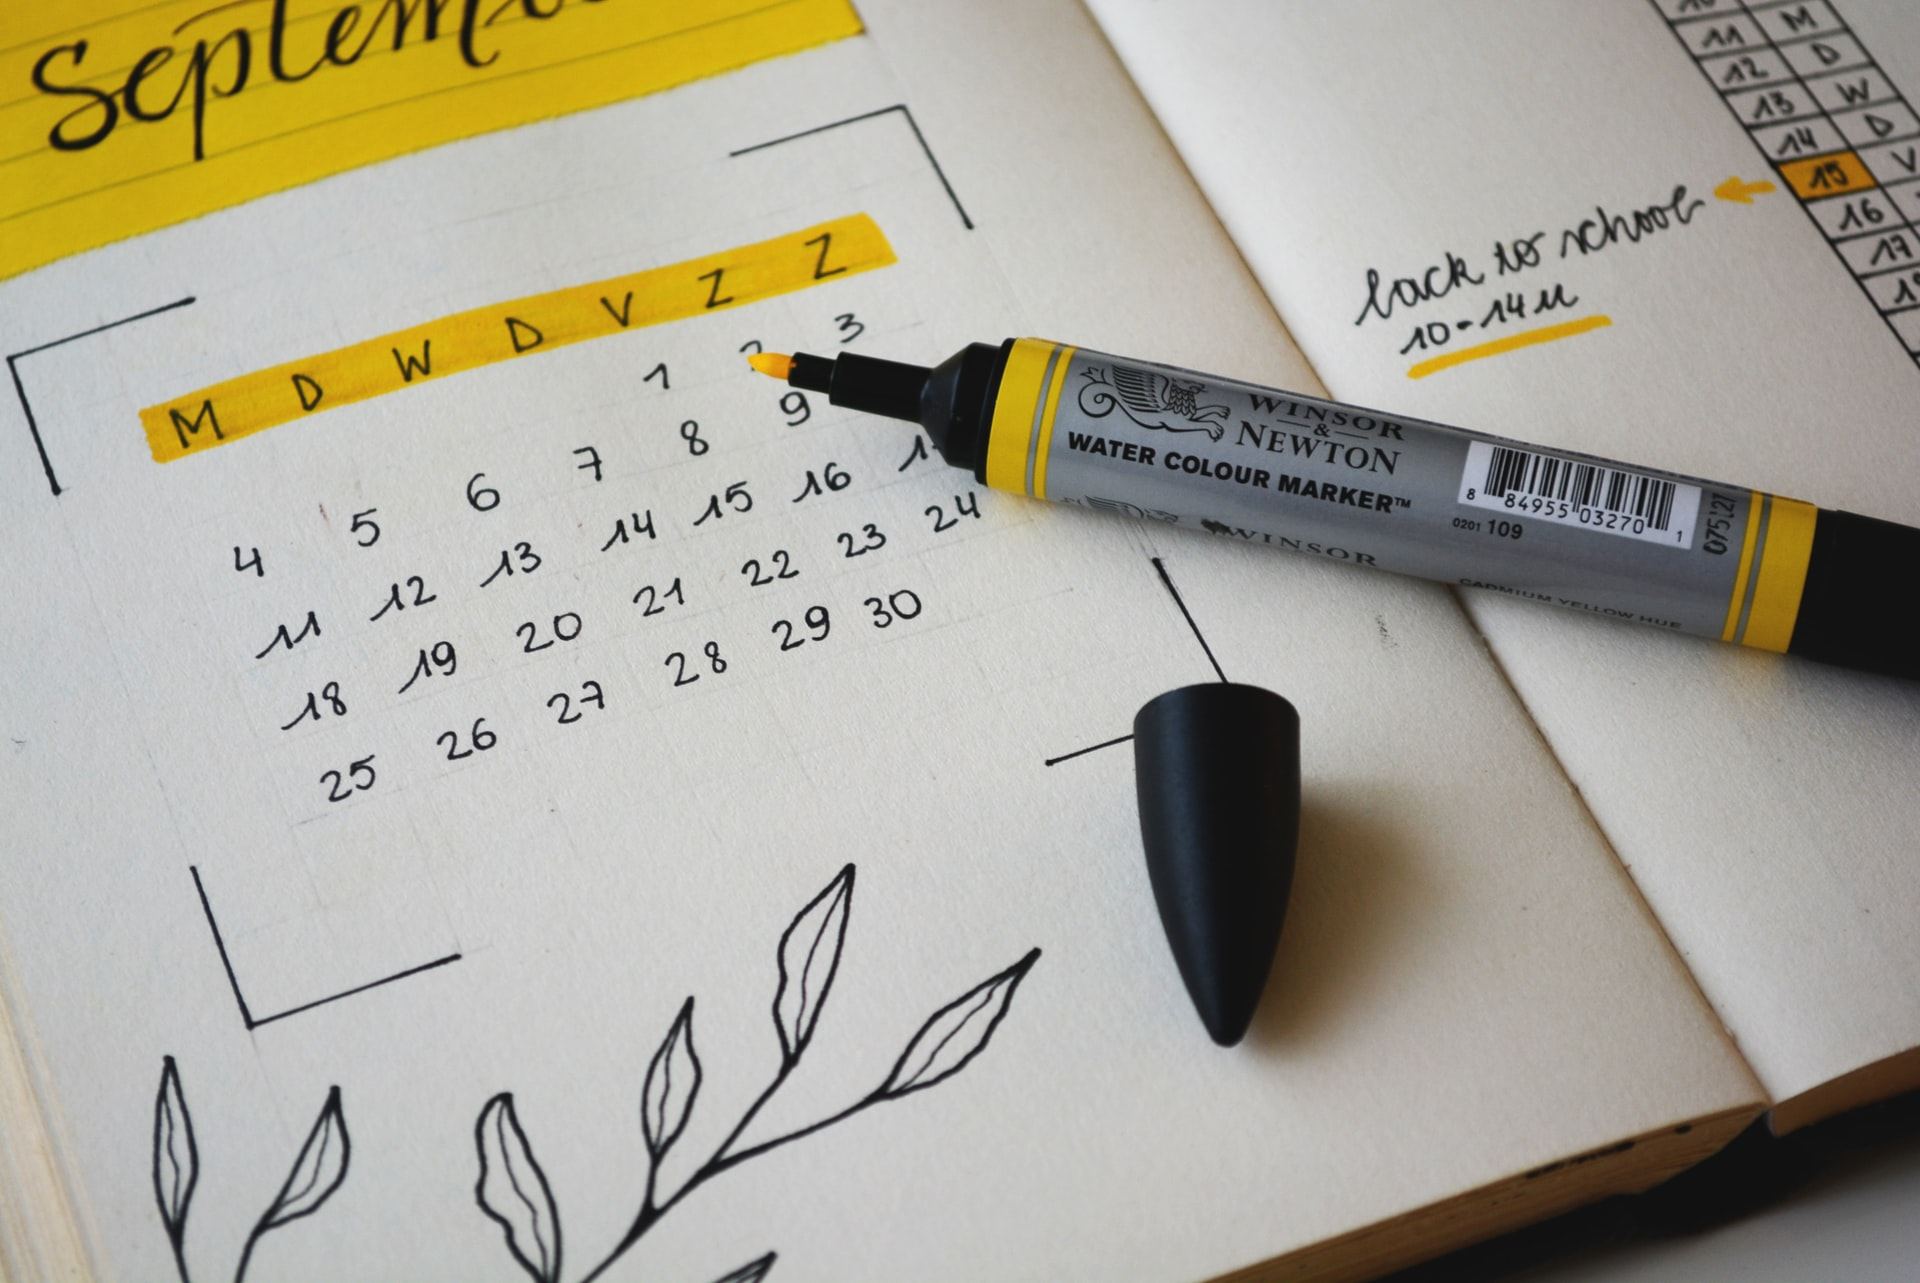 Here we can see a calendar with a drawing of a plant and a yellow highlighter